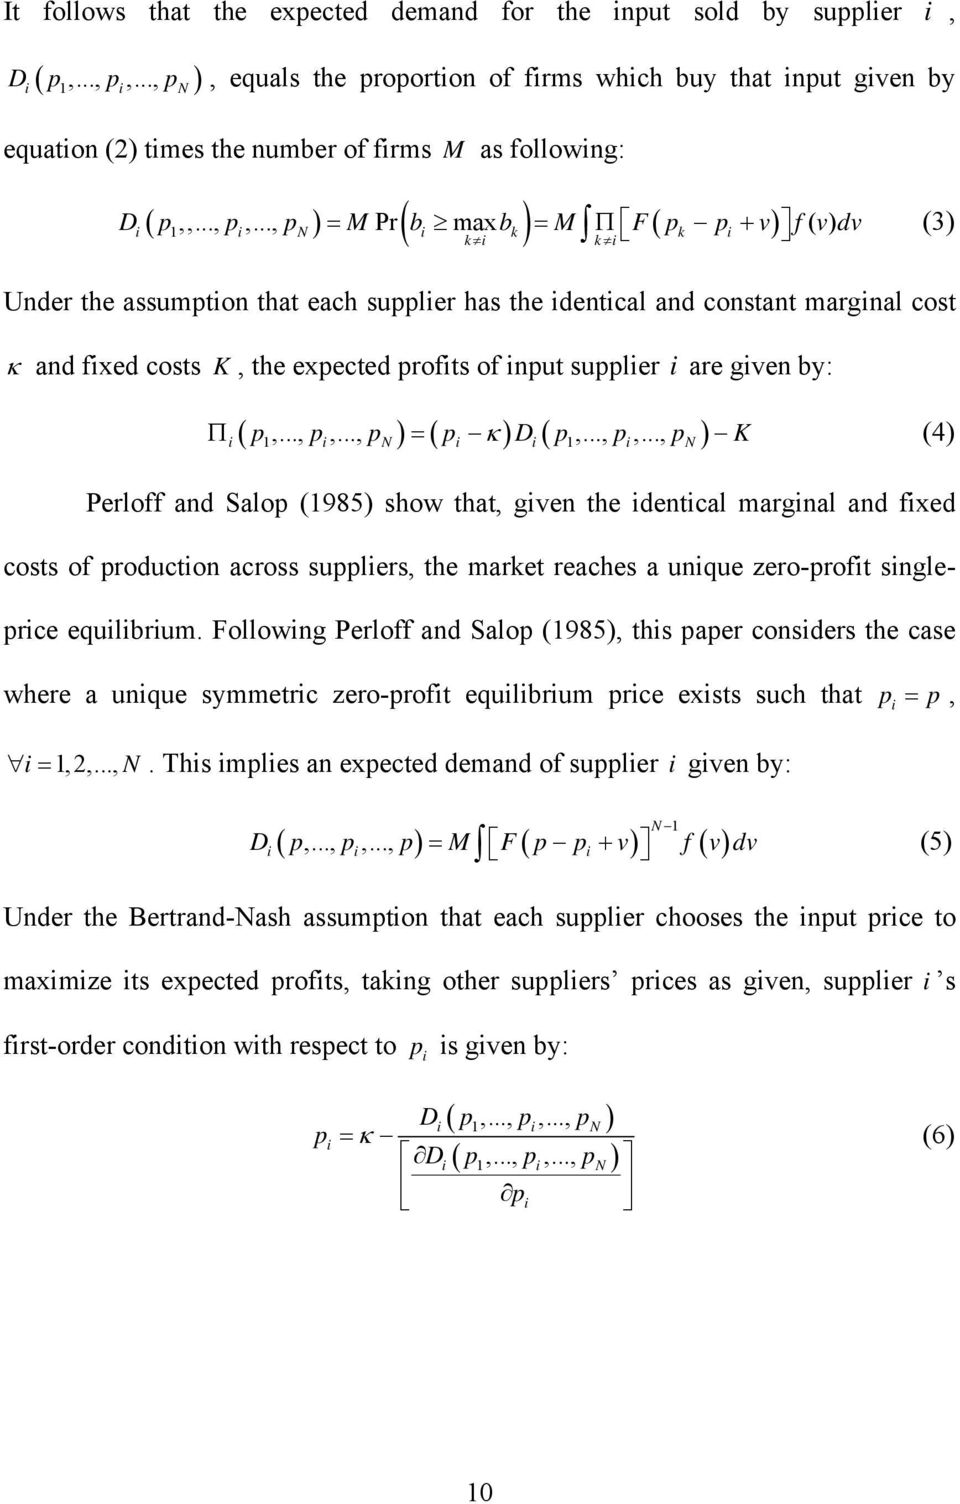 .., p = M Pr b max b = M Π F p p + v f( v) dv (3) i 1 i N i k k i k i k i Under the assumption that each supplier has the identical and constant marginal cost κ and fixed costs K, the expected